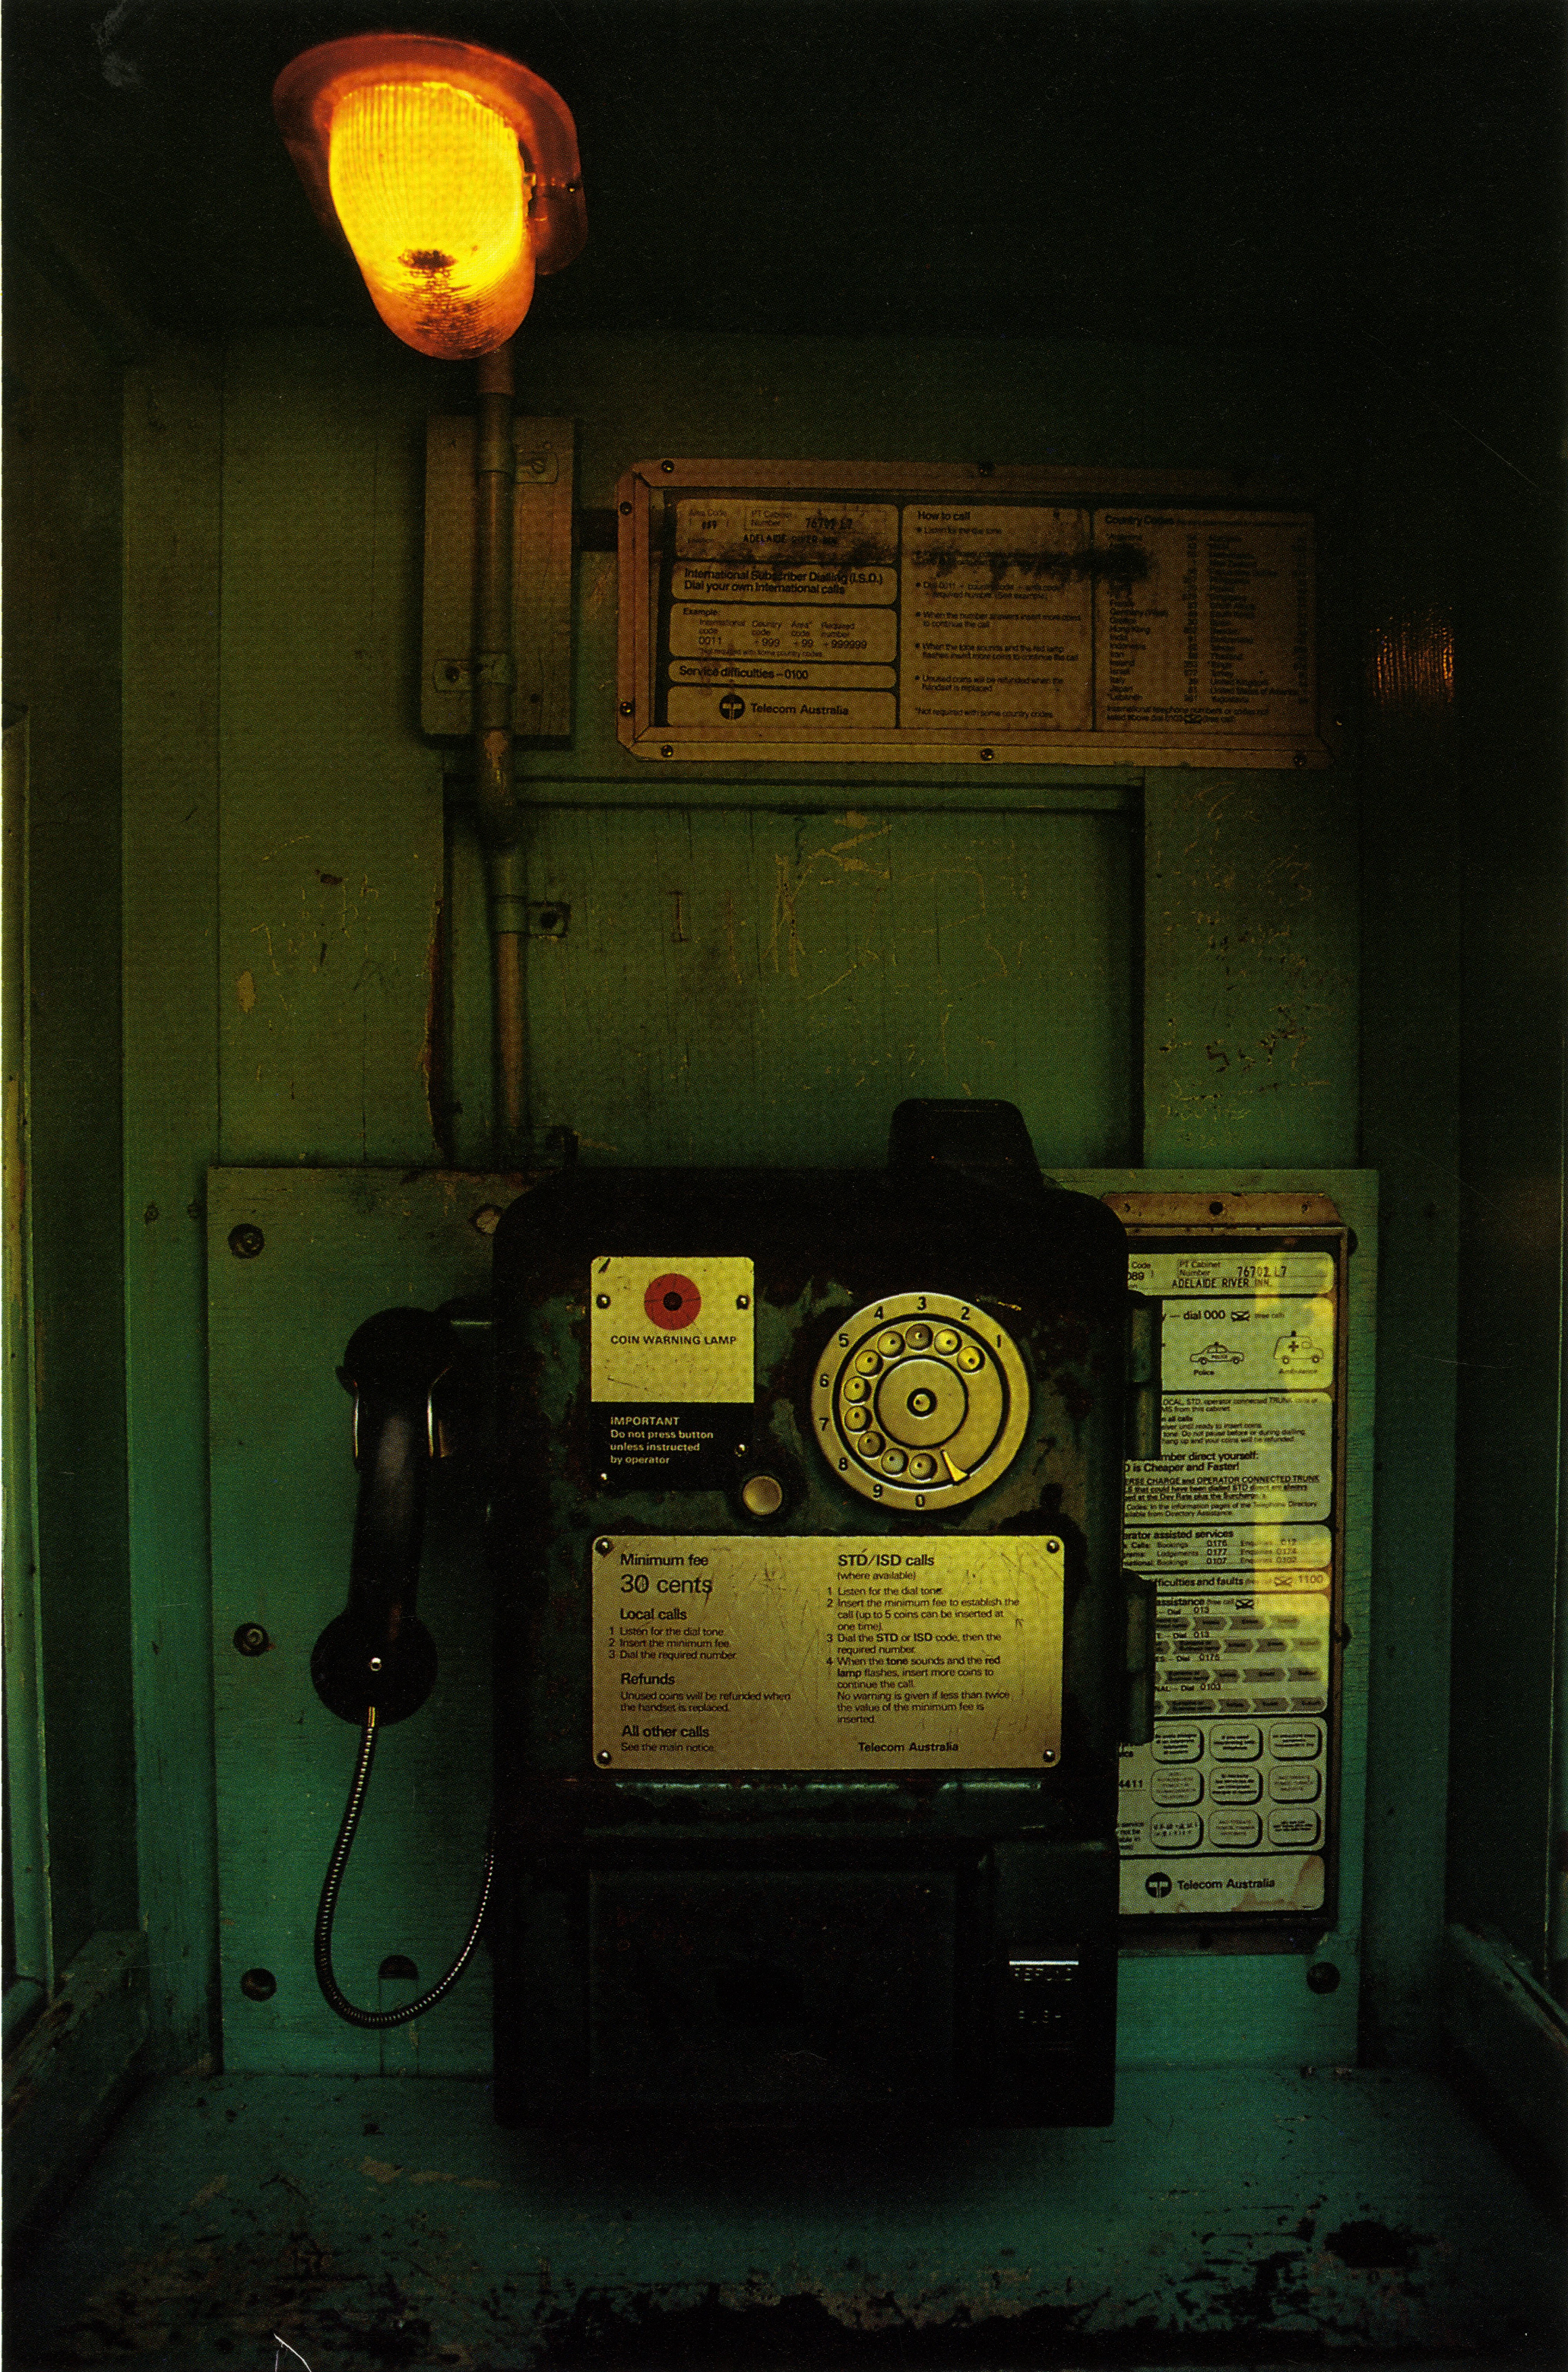 Max Forsythe, 'Green Phone', From 'Colour Prejudice'-01